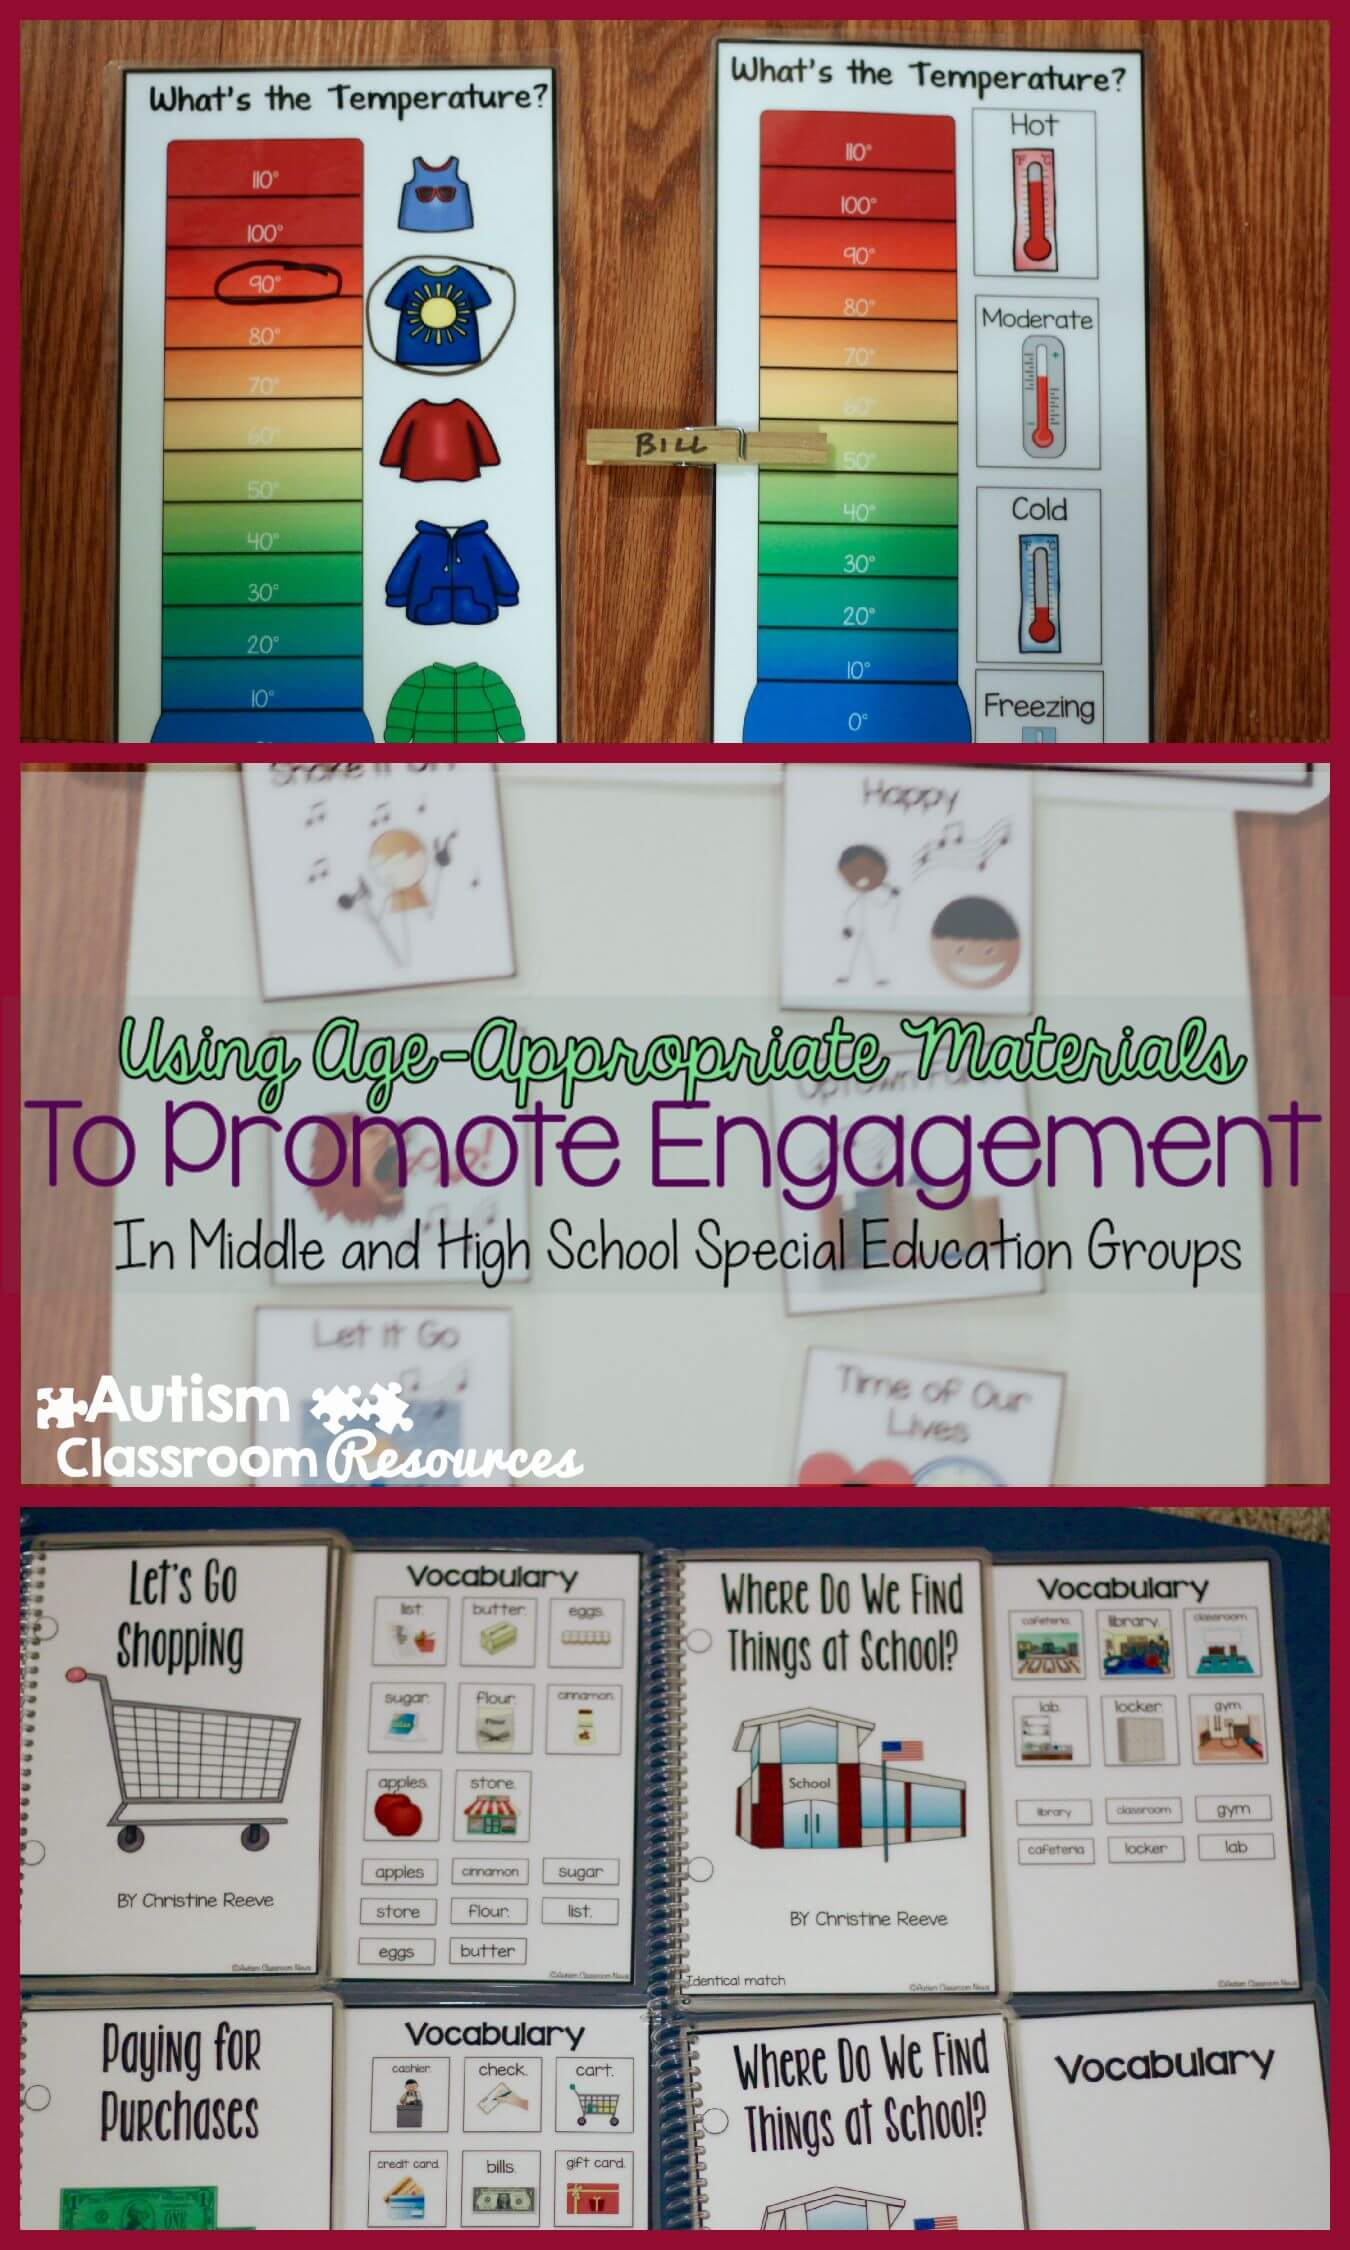 Promoting Engagement Using Age Appropriate Materials In Middle And High School Special Education